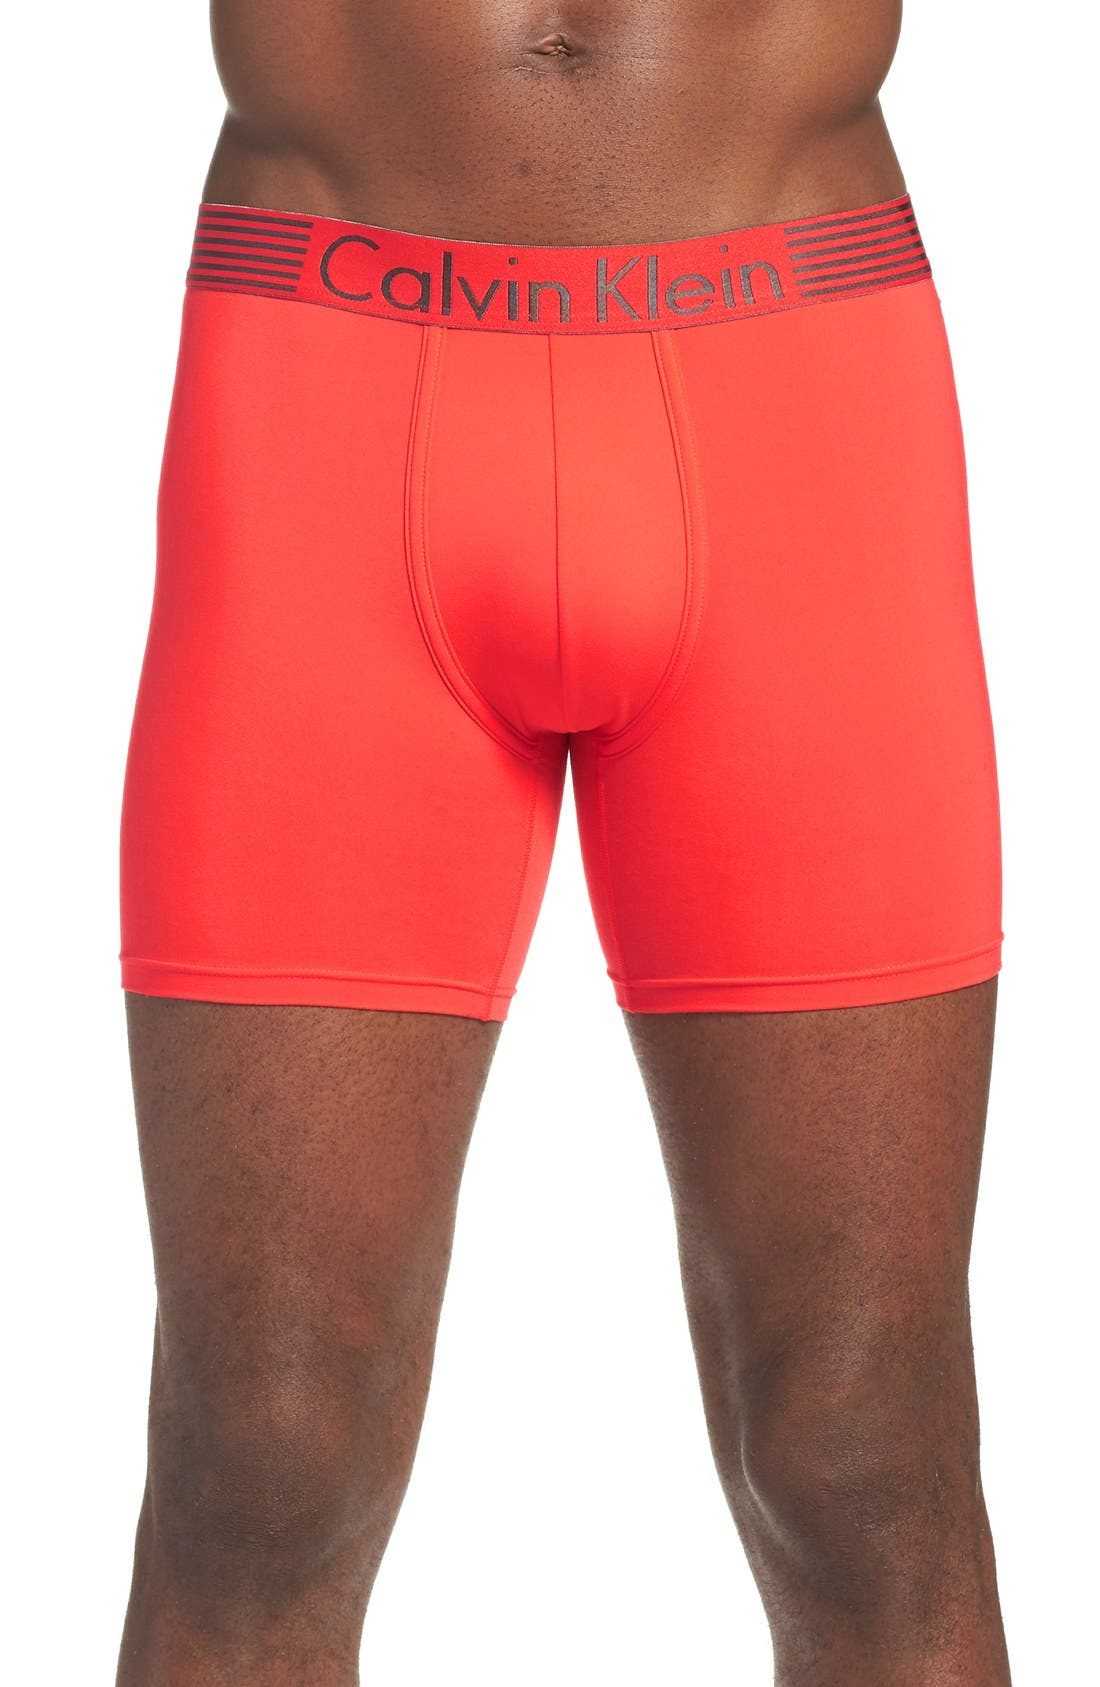 CALVIN KLEIN Iron Strength Boxer Briefs